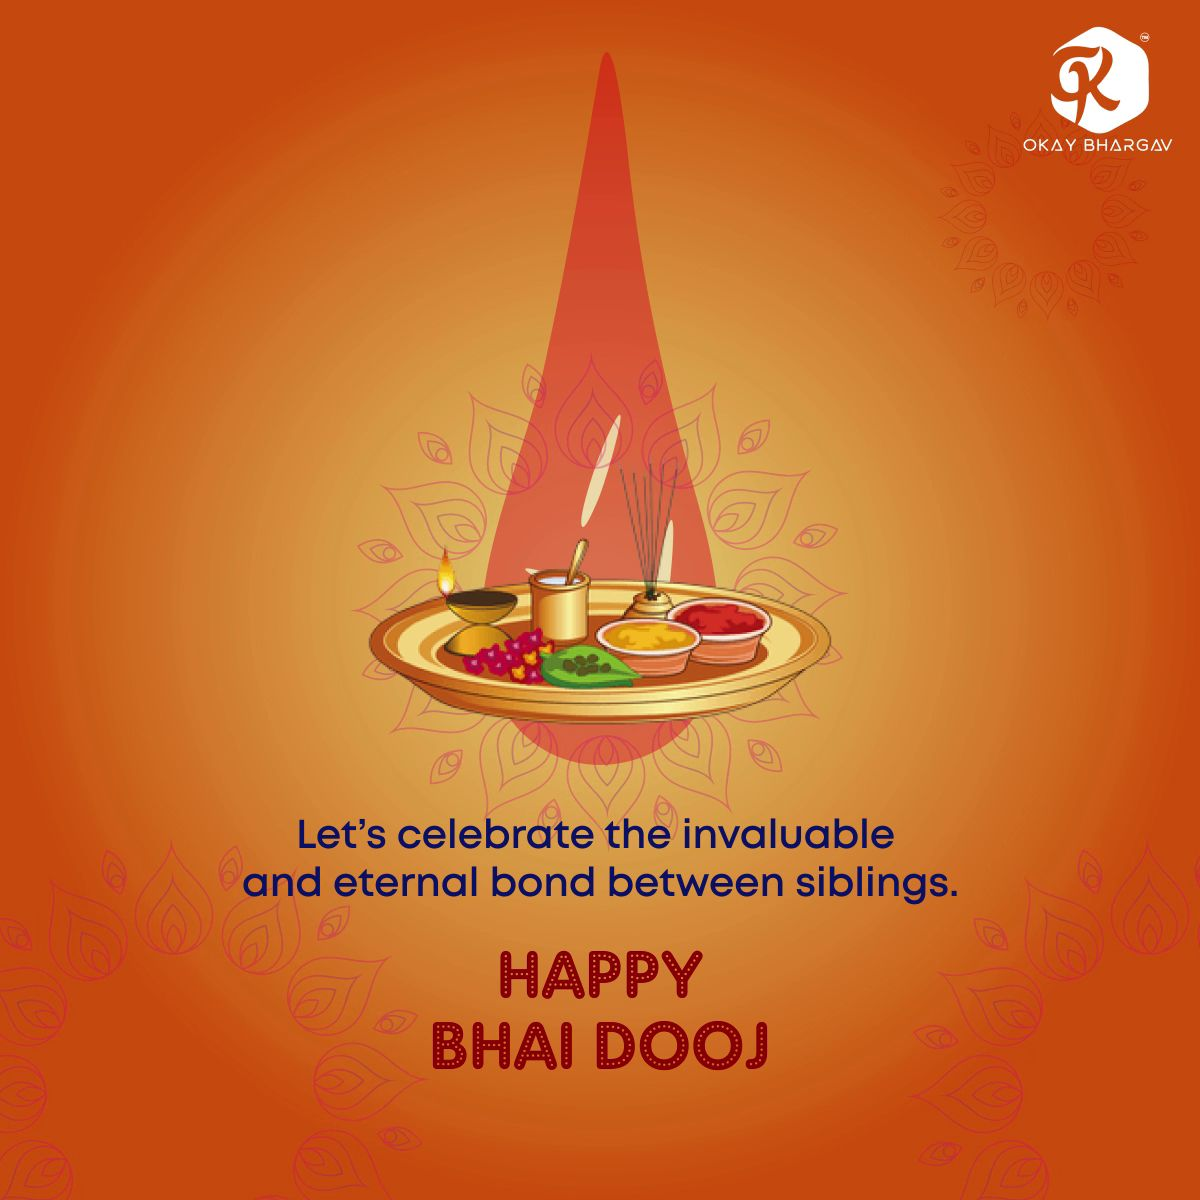 #2 Bhai Dooj  free after effects templates - after effects - Okay Bhargav